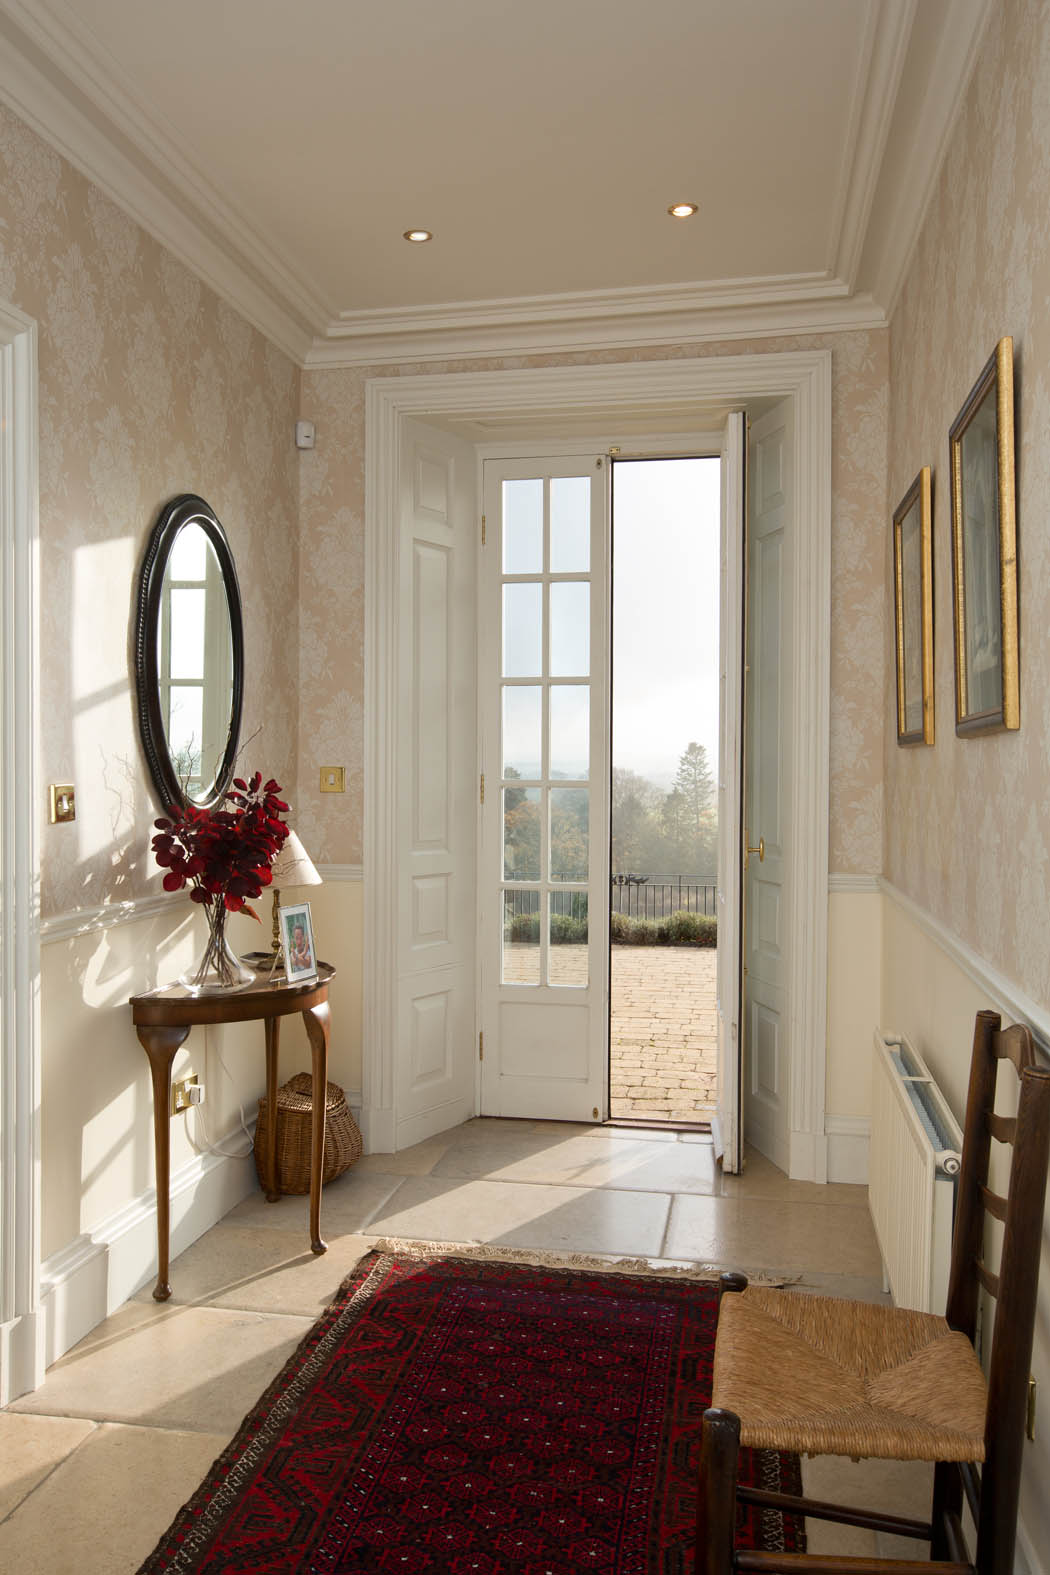 Hallway with views, Bowden House B&B